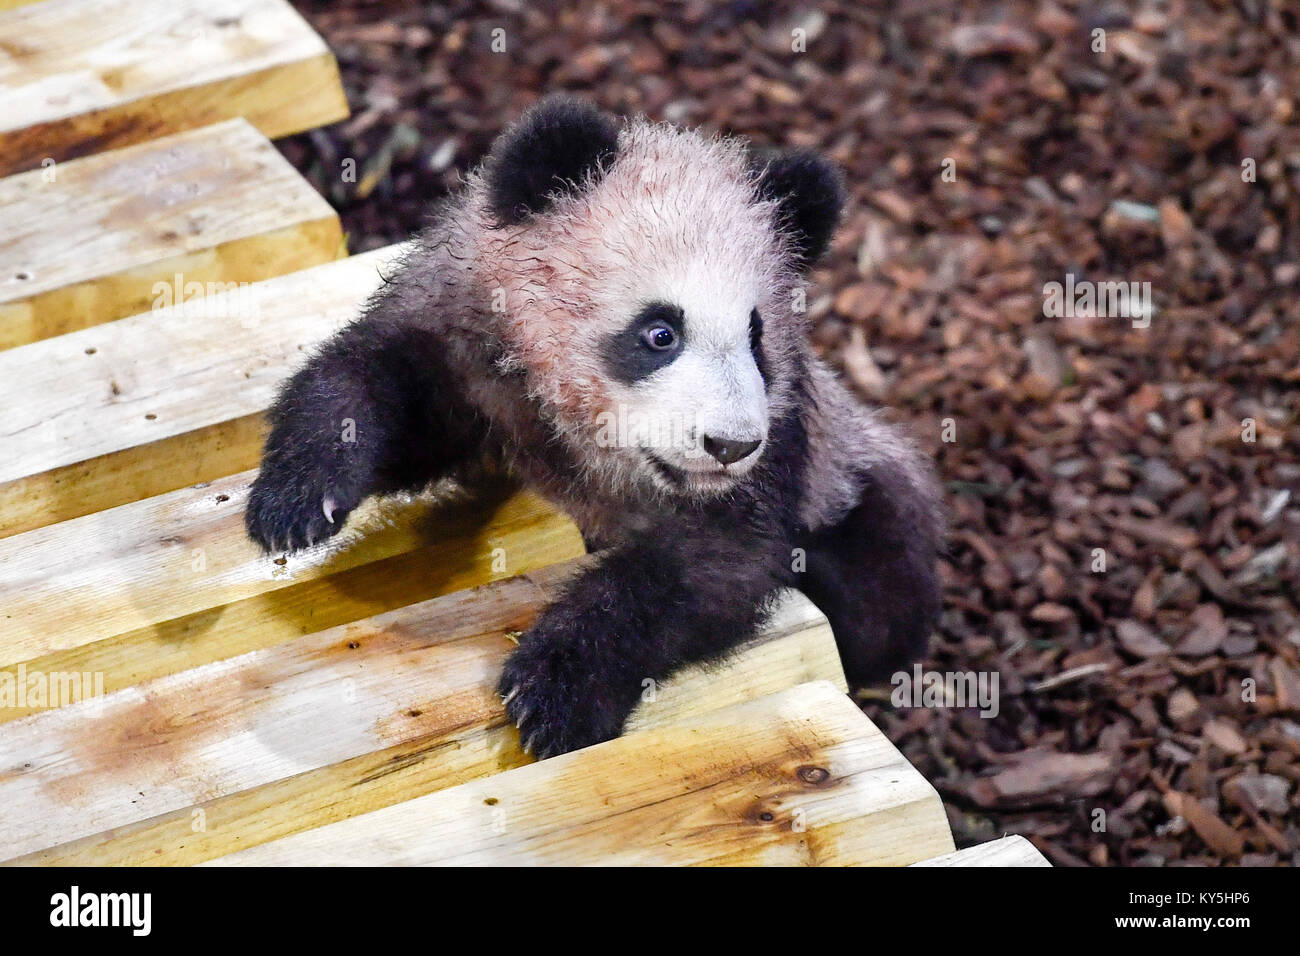 Saint Aignan. 13th Jan, 2018. Photo taken on Jan. 13, 2018 shows the panda baby 'Yuan Meng' in Zooparc de - Stock Image